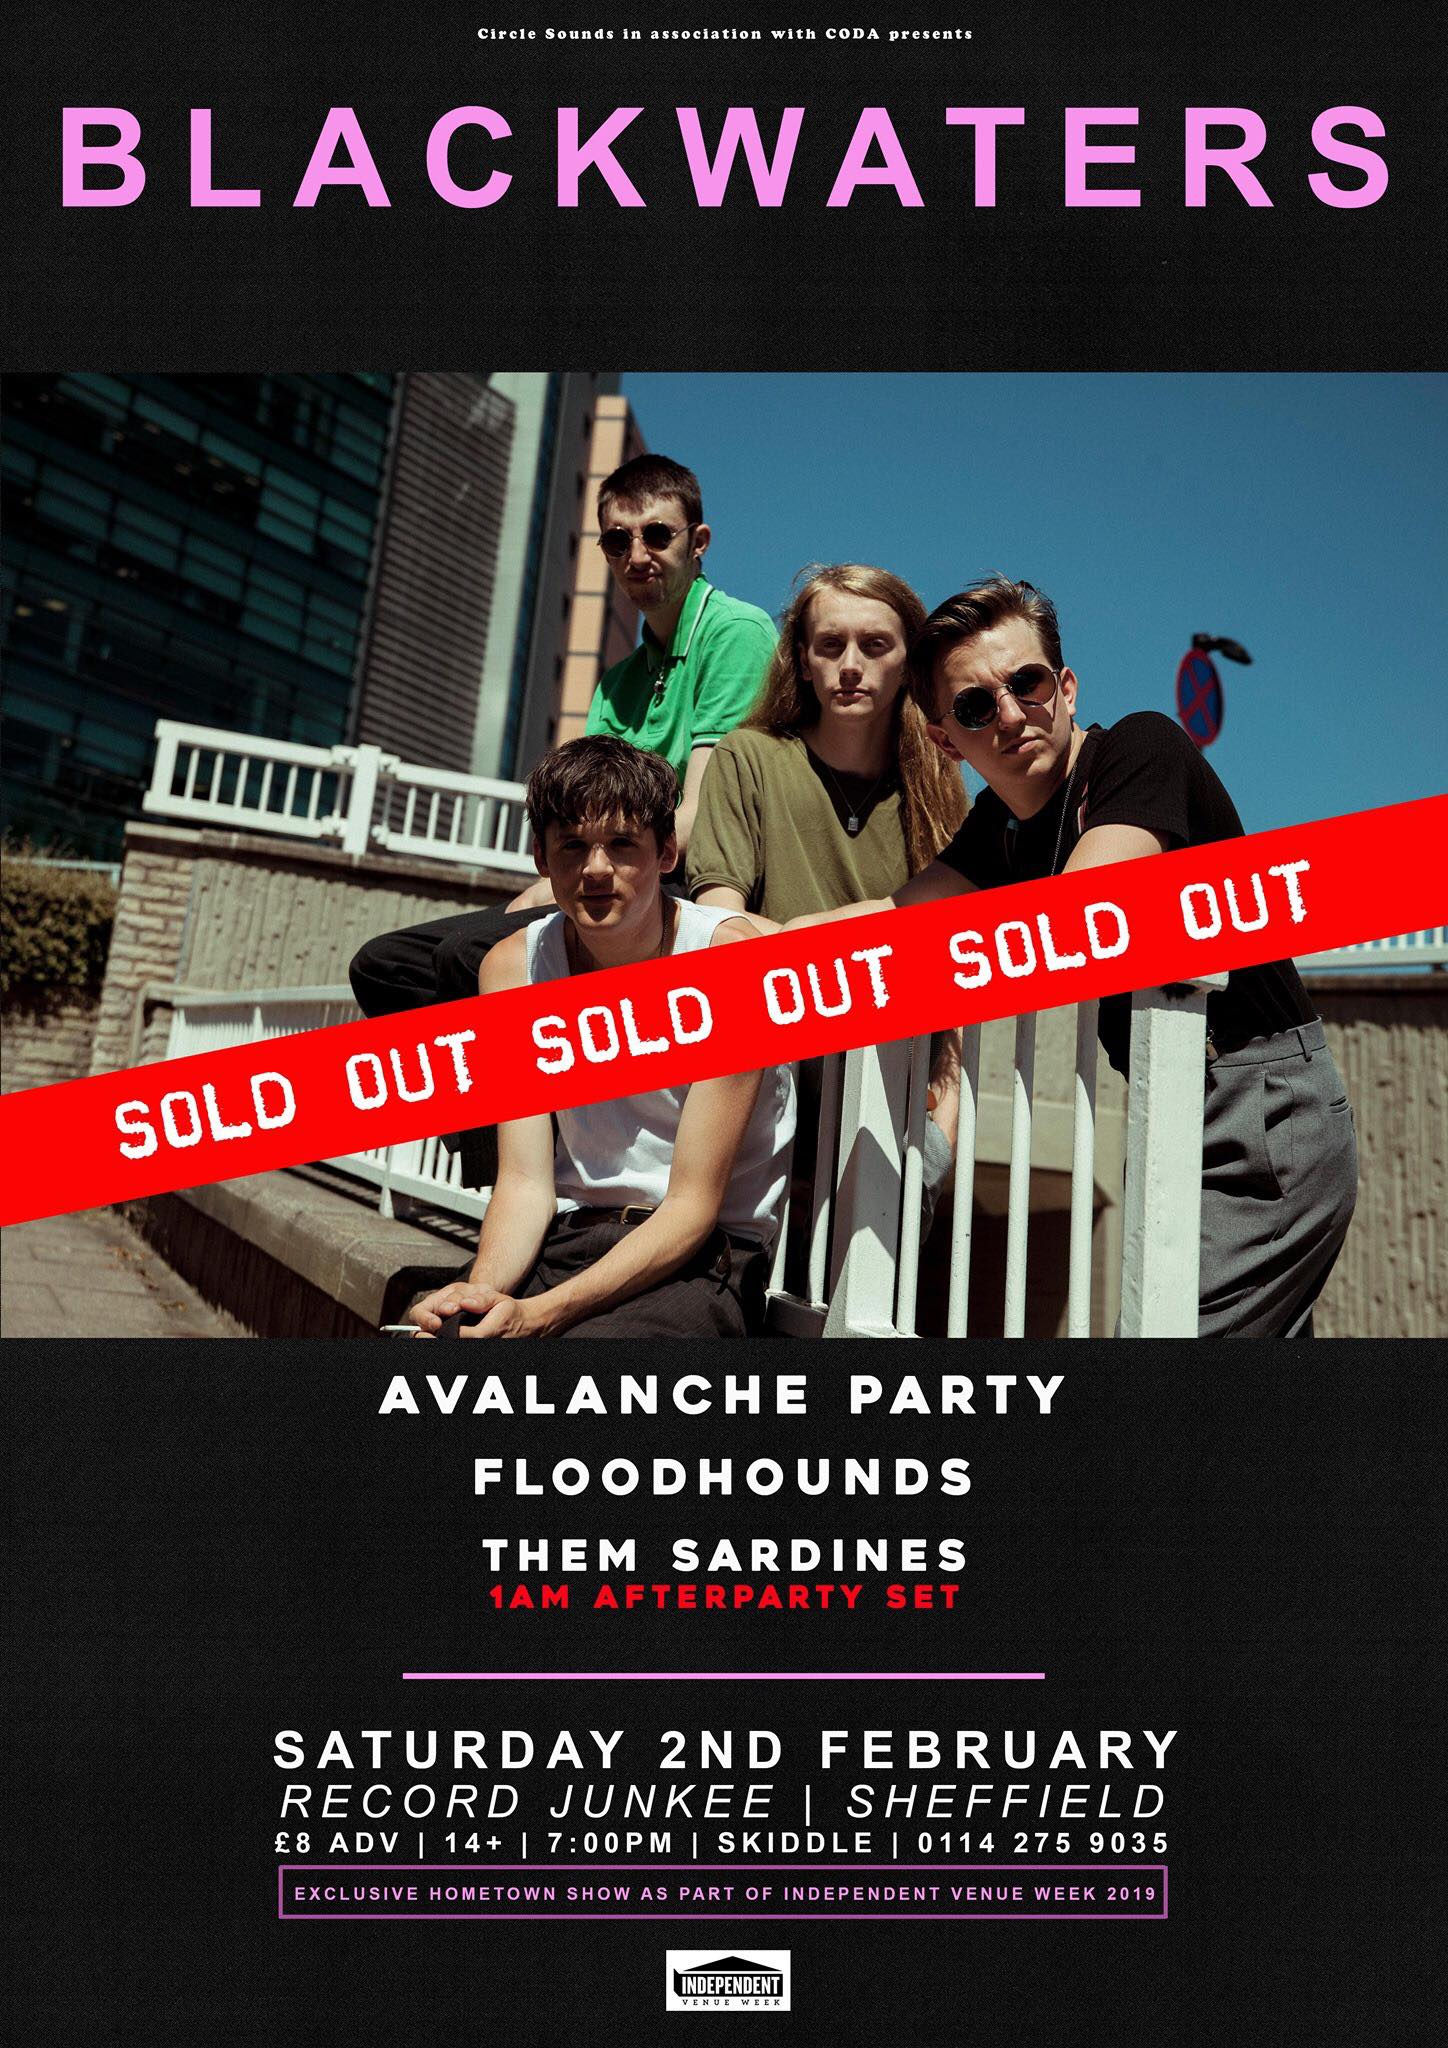 blackwaters sold out.jpg